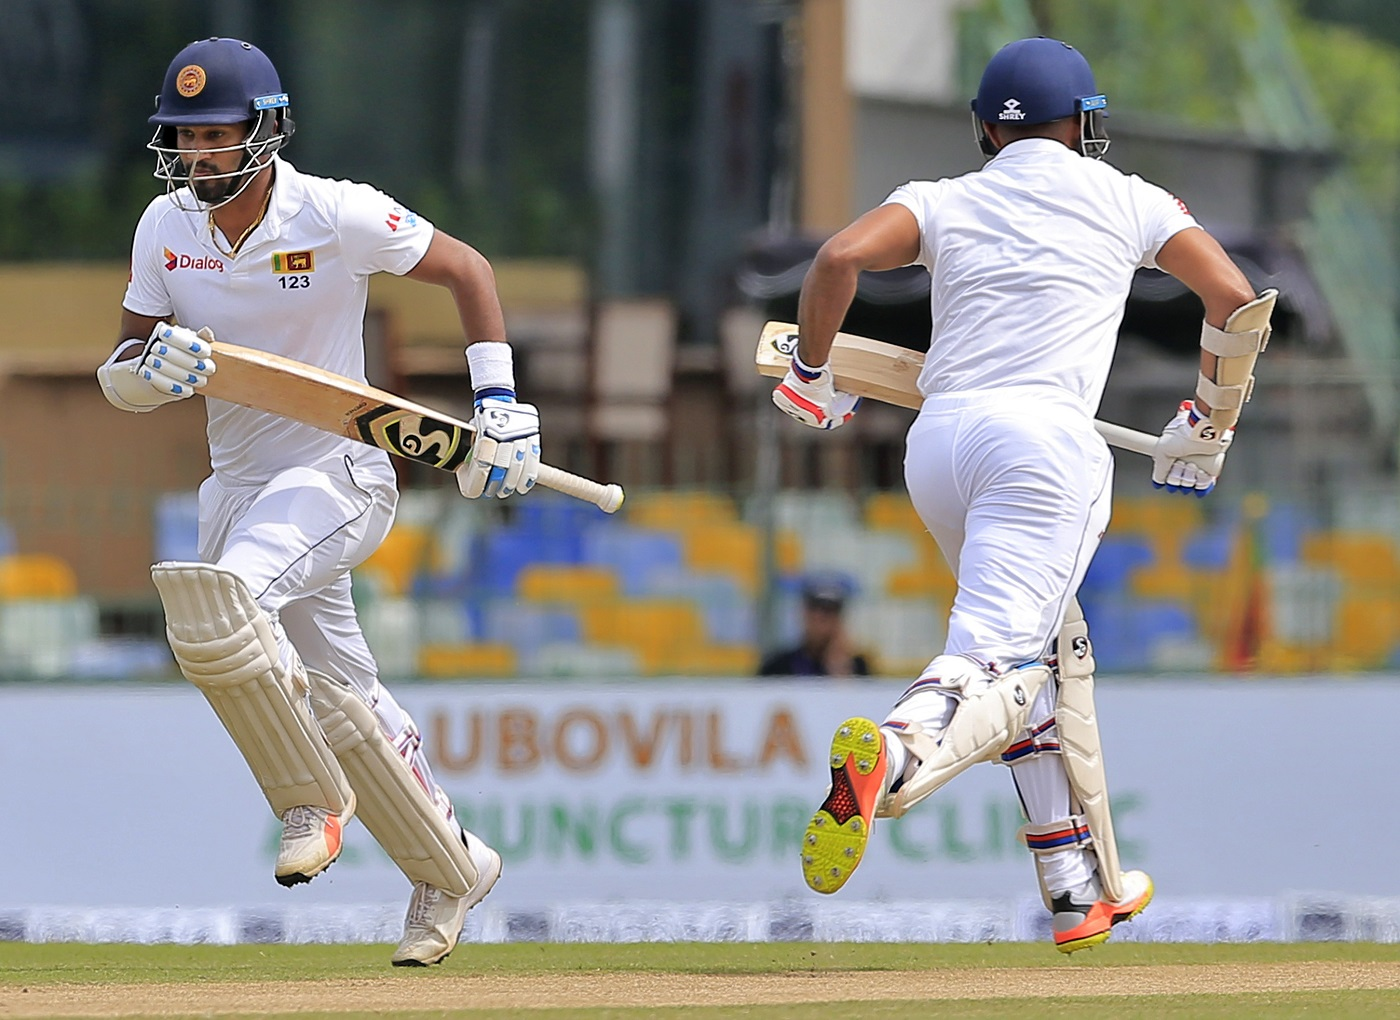 Sri Lanka vs South Africa 2nd Test Day 1